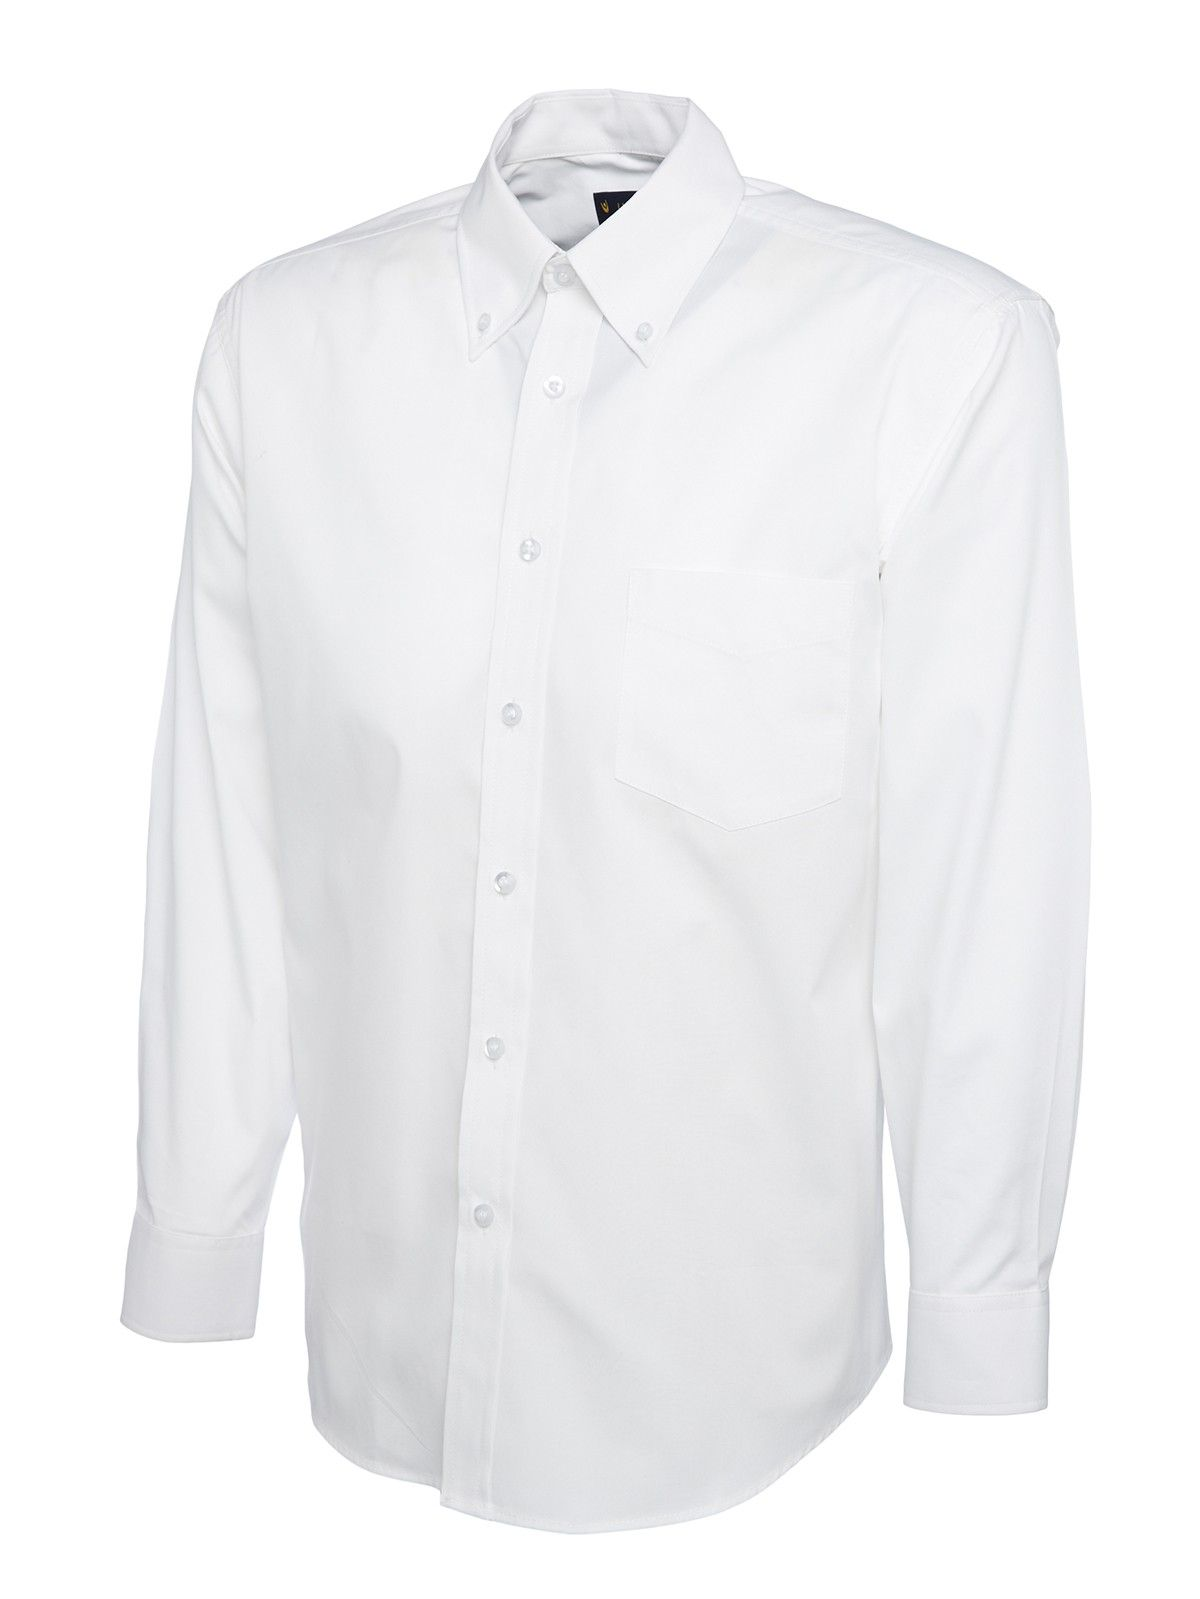 Oxford Shirts Mens